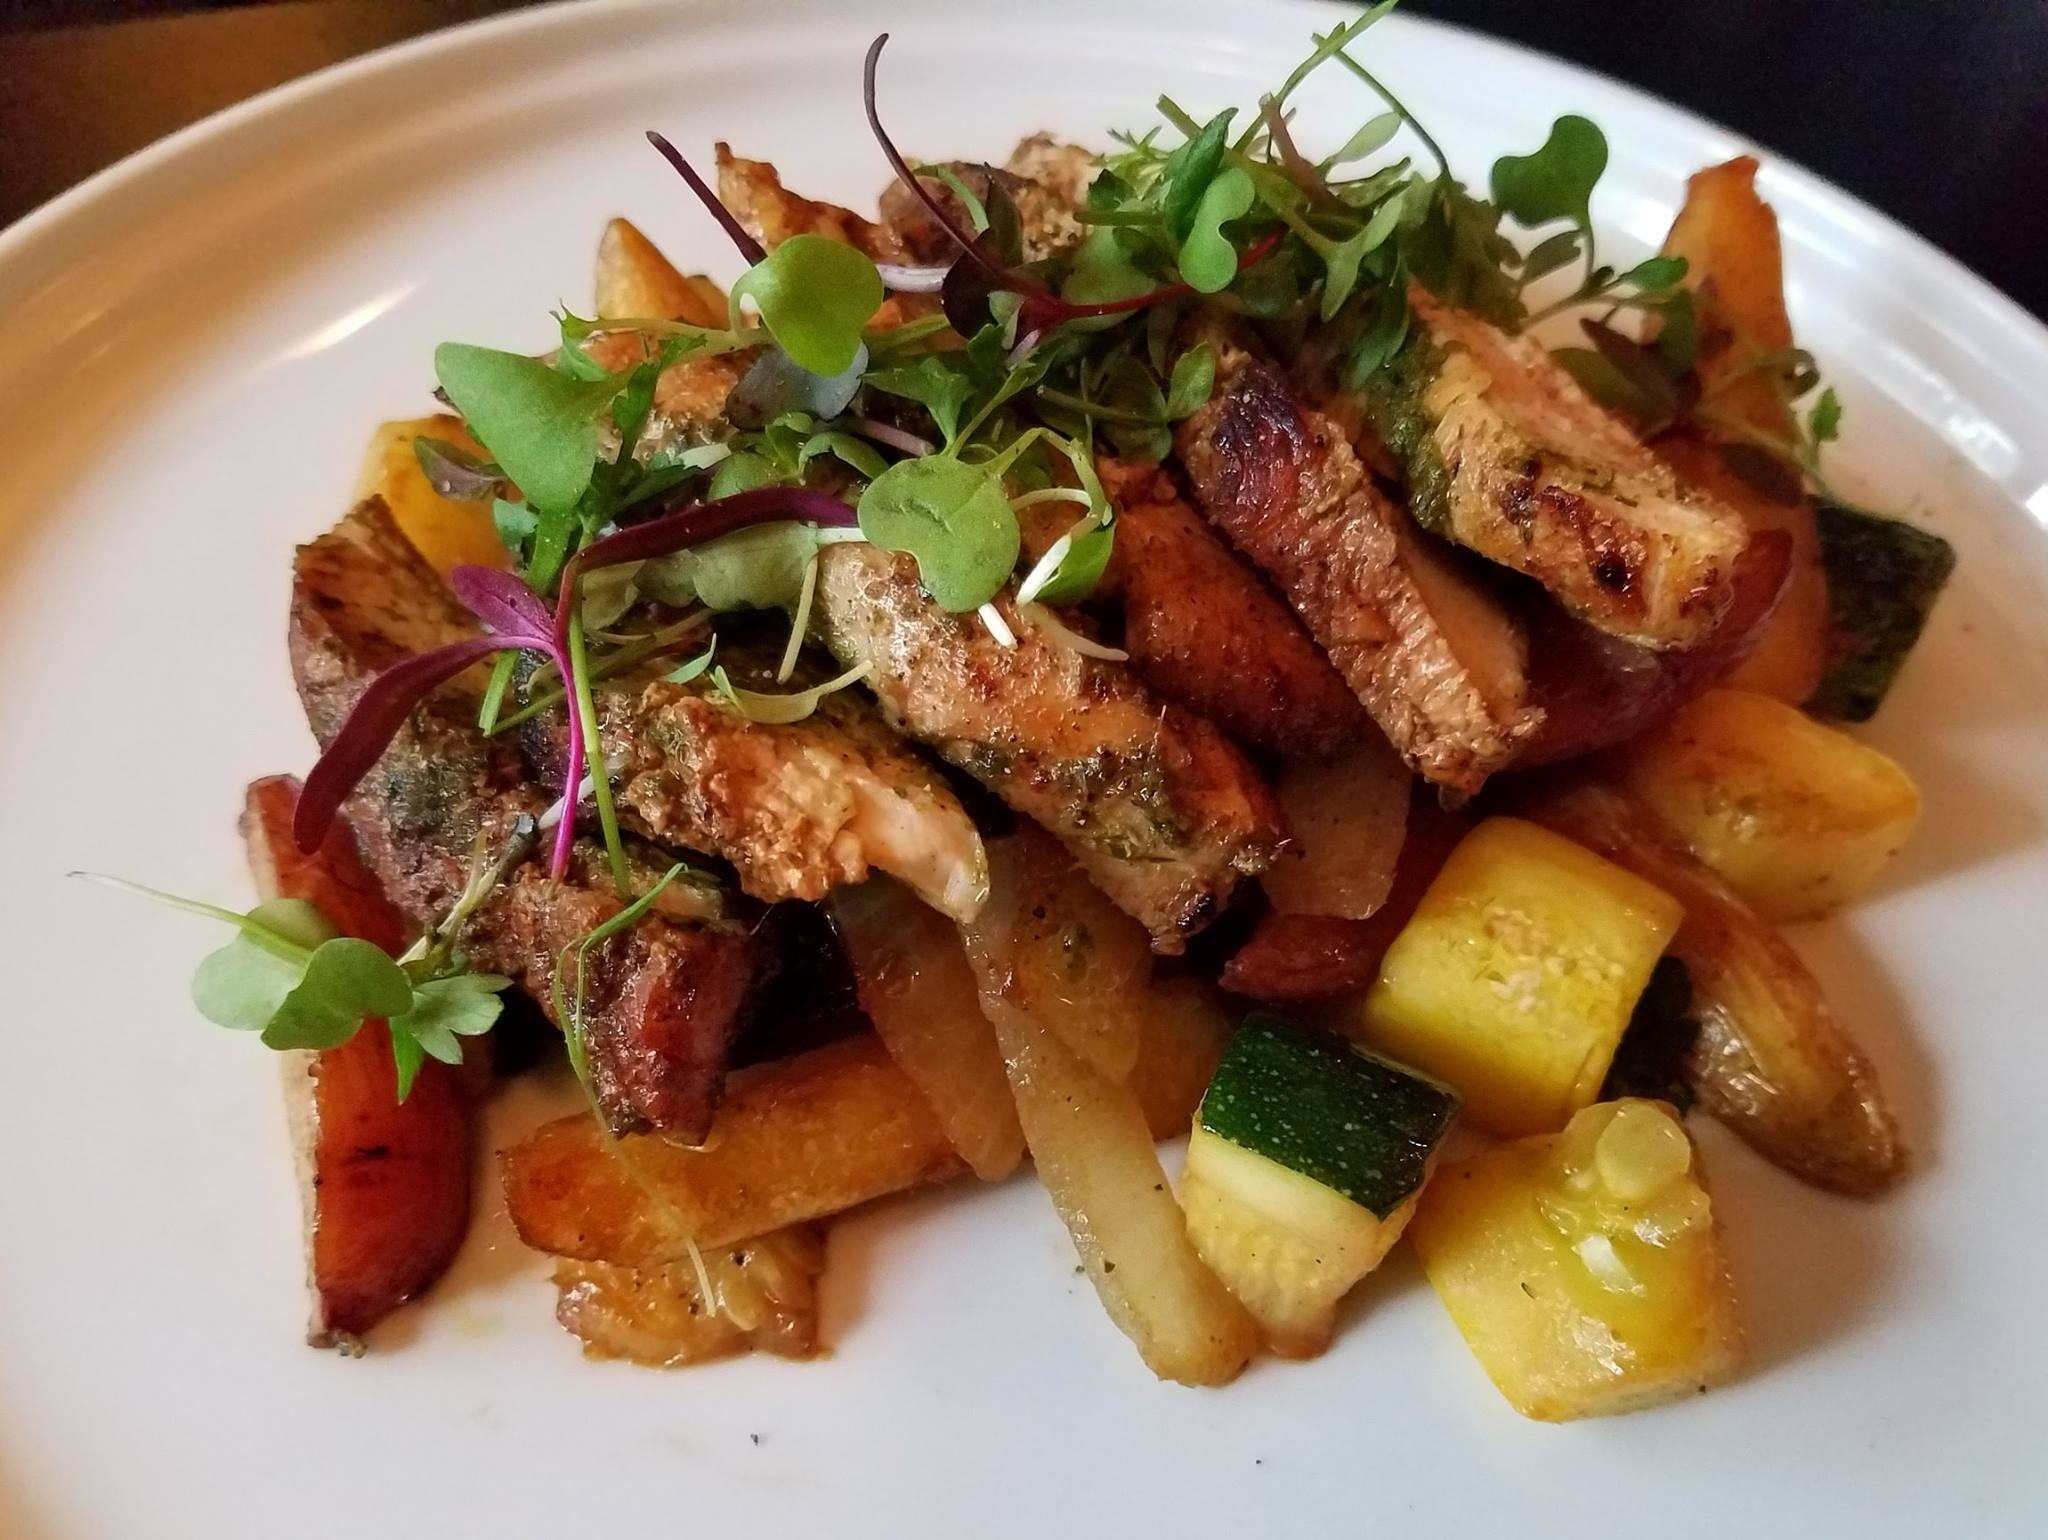 The Camano Island Waterfront Inn where chef Dylan Alexander crafts feasts from local farms is a delight for dinner. (Image: Camano Island Waterfront Inn Facebook){&amp;nbsp;}<p></p>